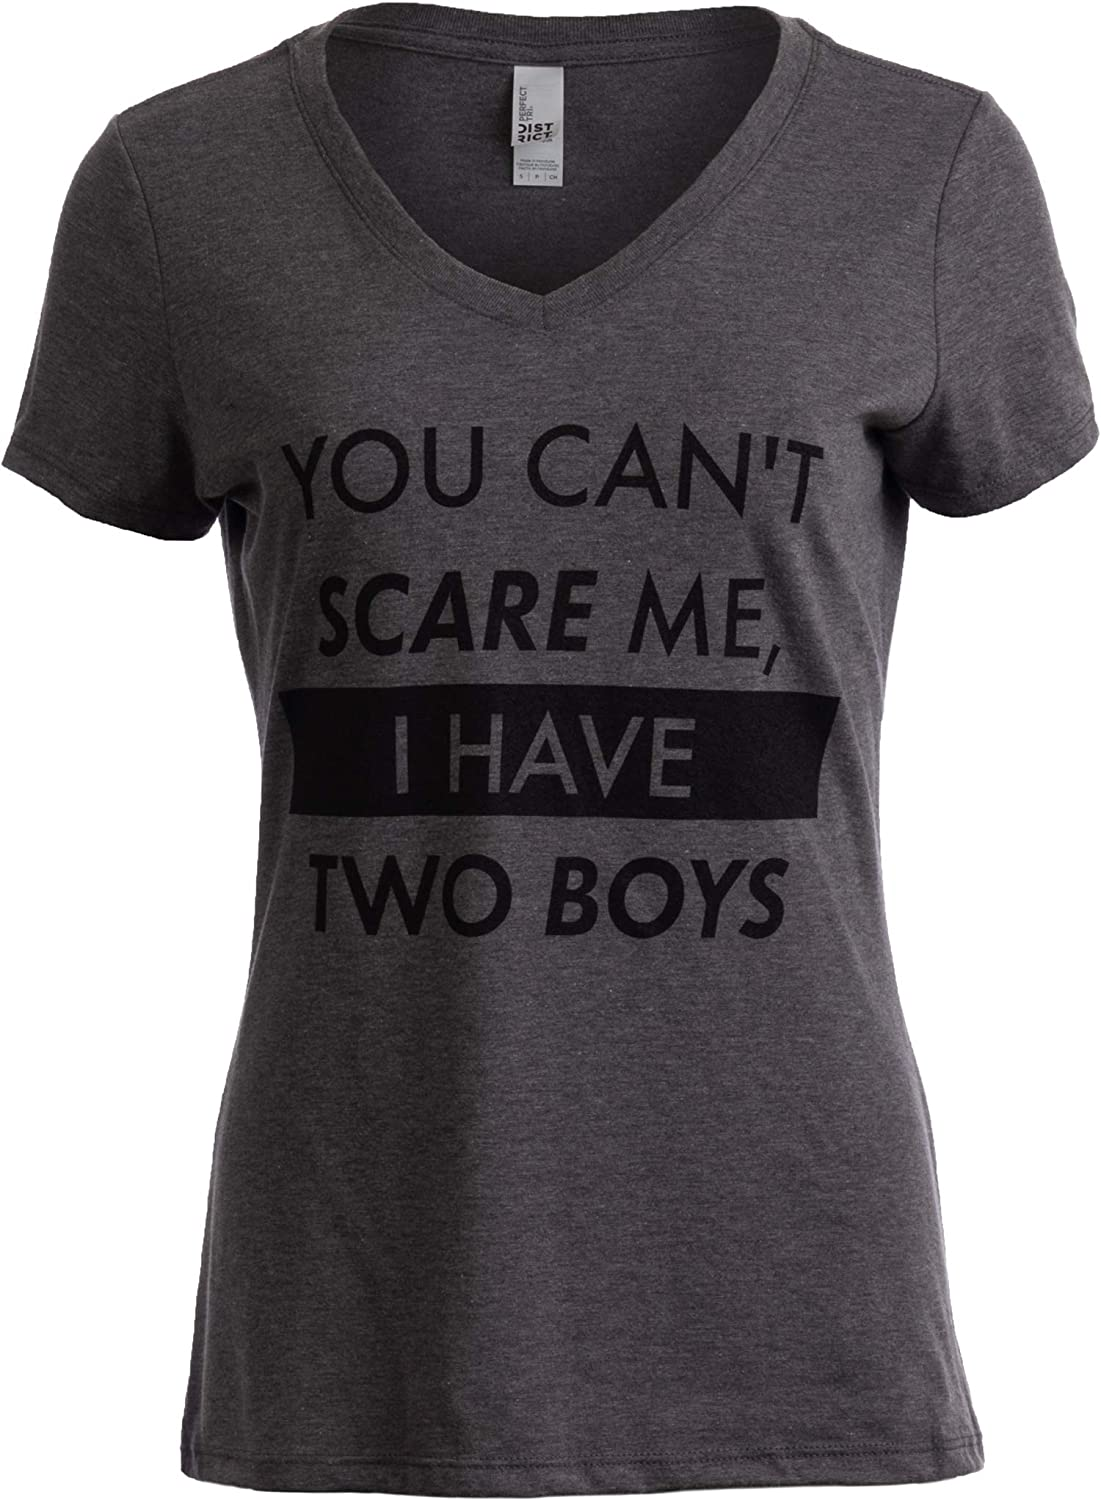 You Can't Scare Me, I Have Two Boys   Funny Sons Mom Mommy V-Neck T-Shirt Women